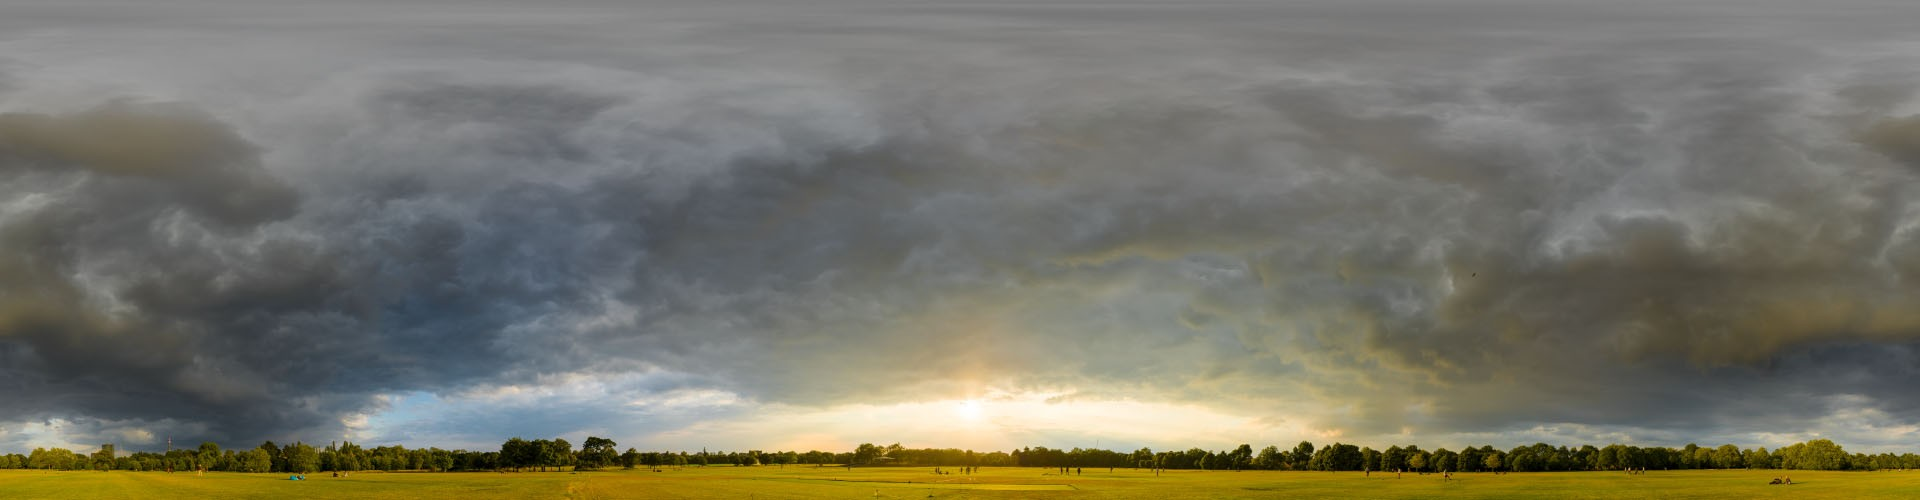 Dramatic Stormy Sunset 9016 (30k) HDRI